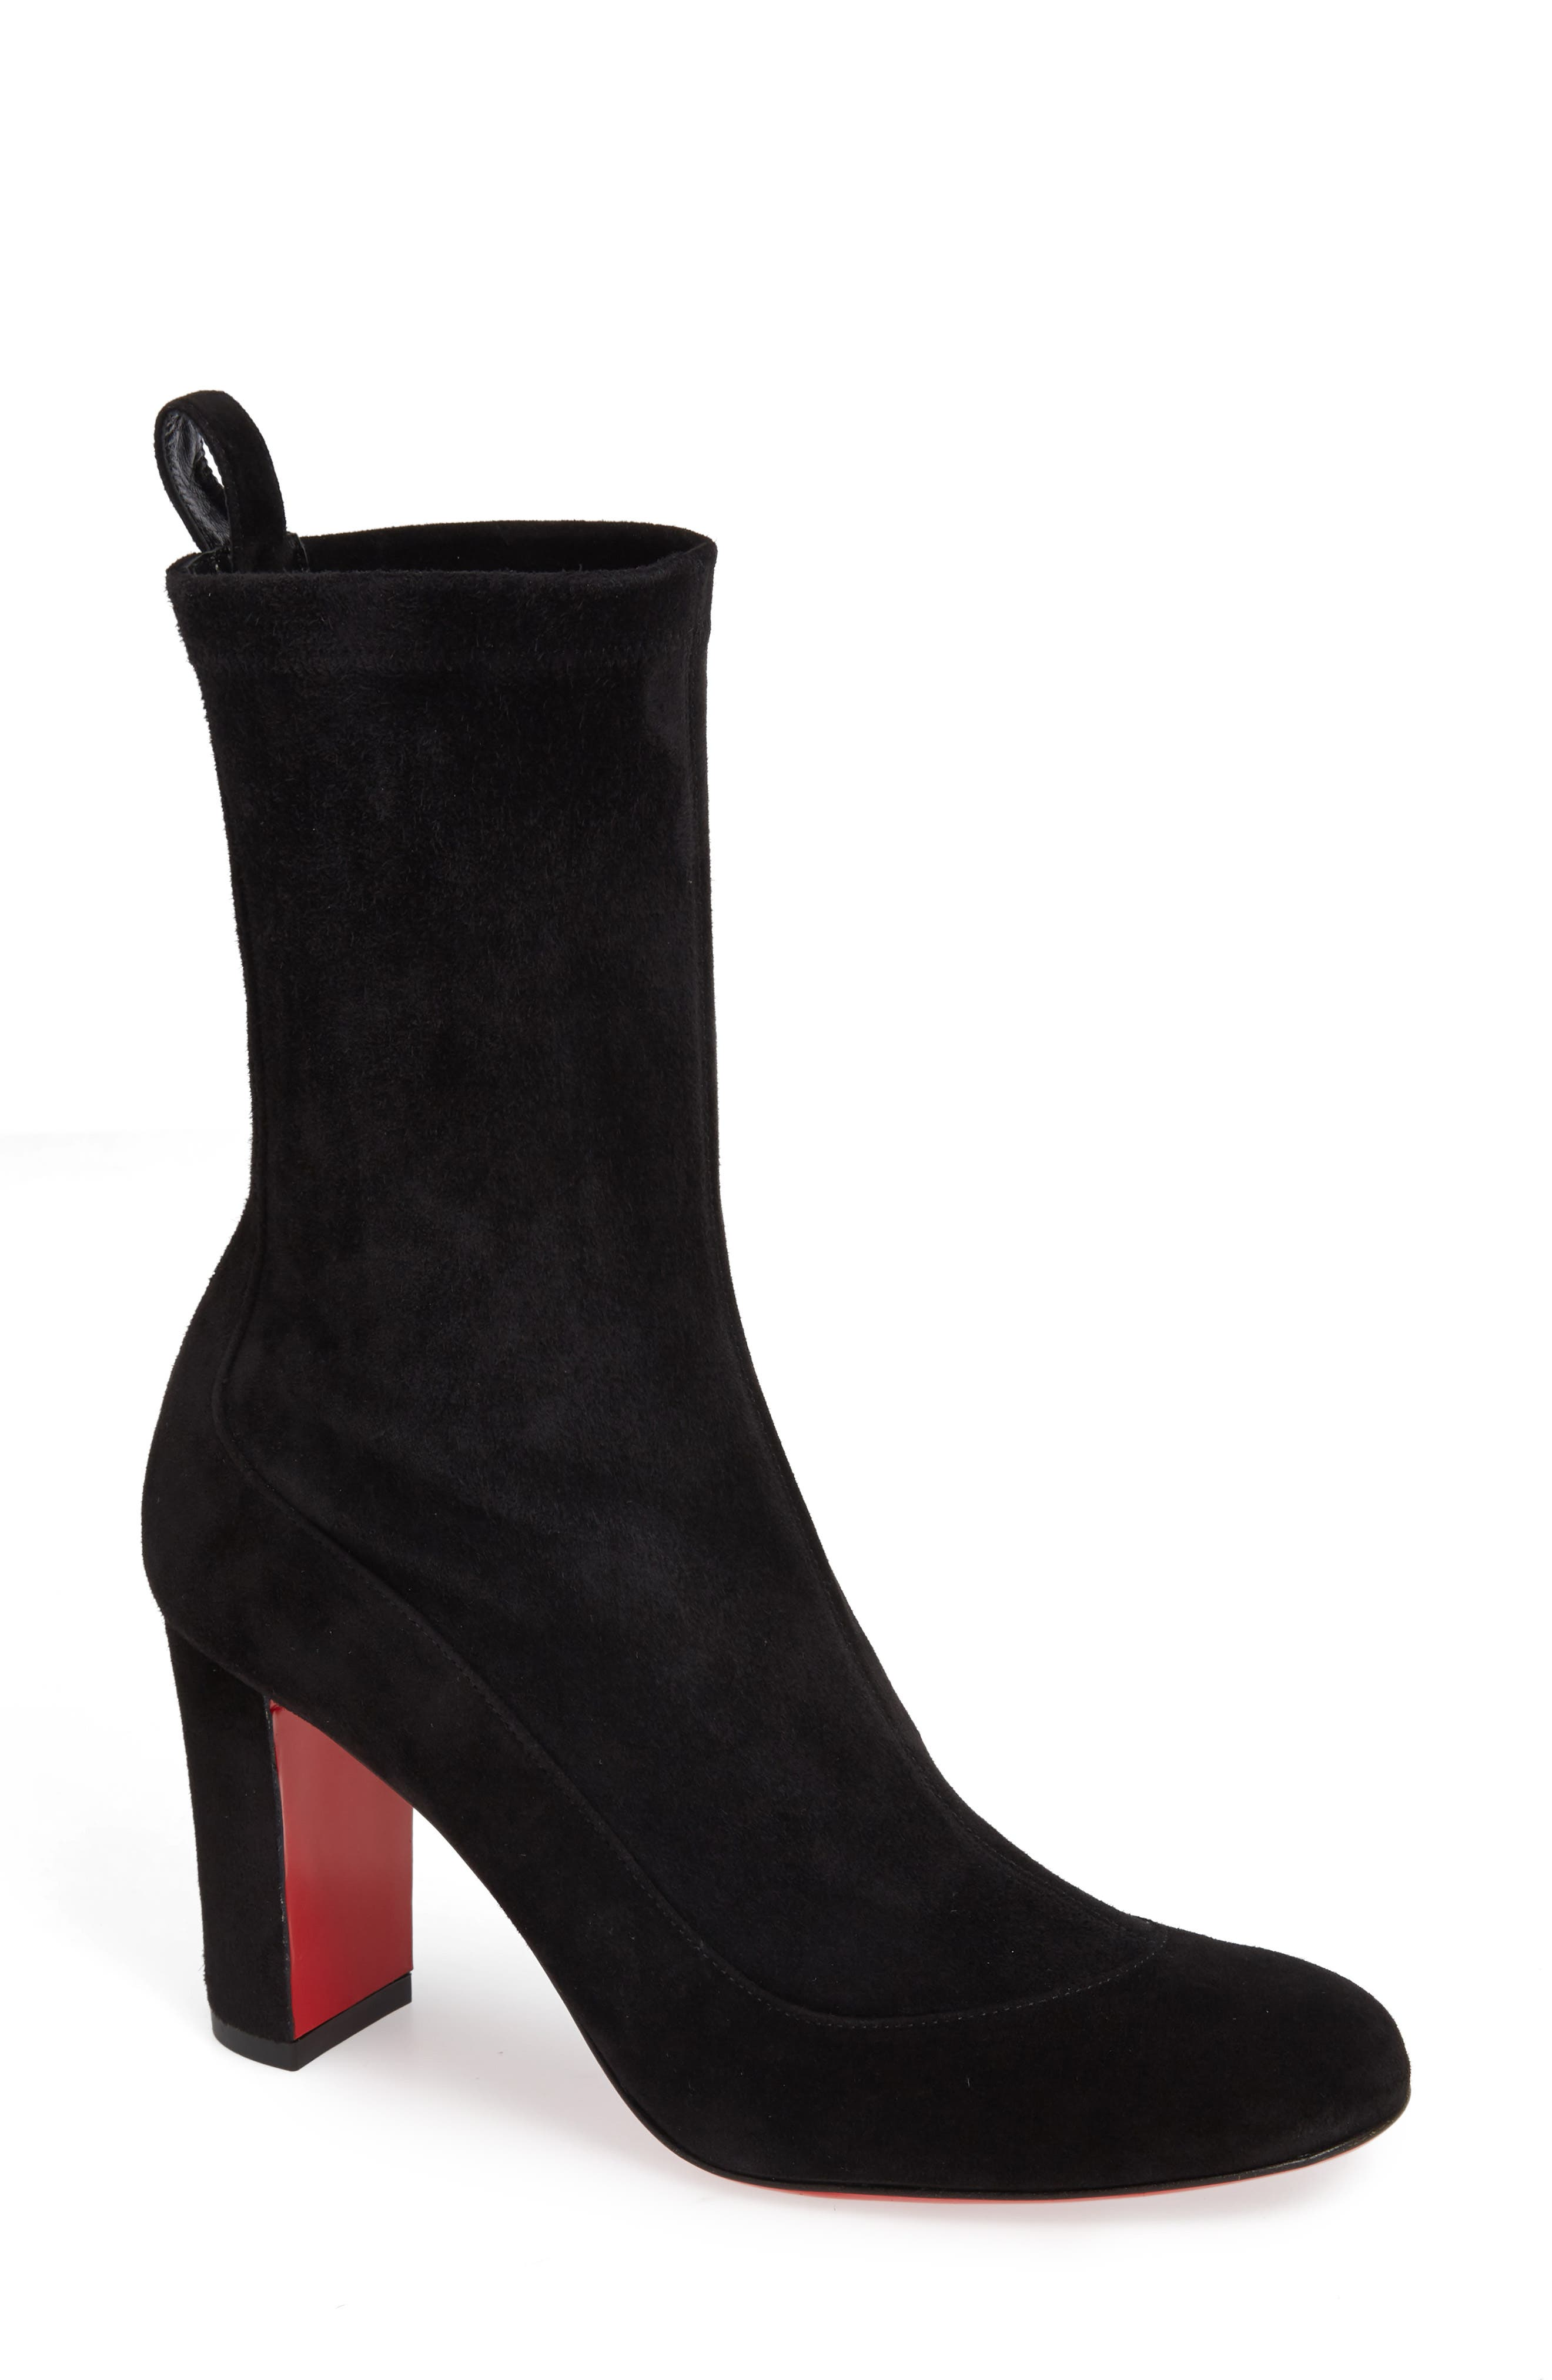 Christian Louboutin Gena Stretch Shaft Bootie